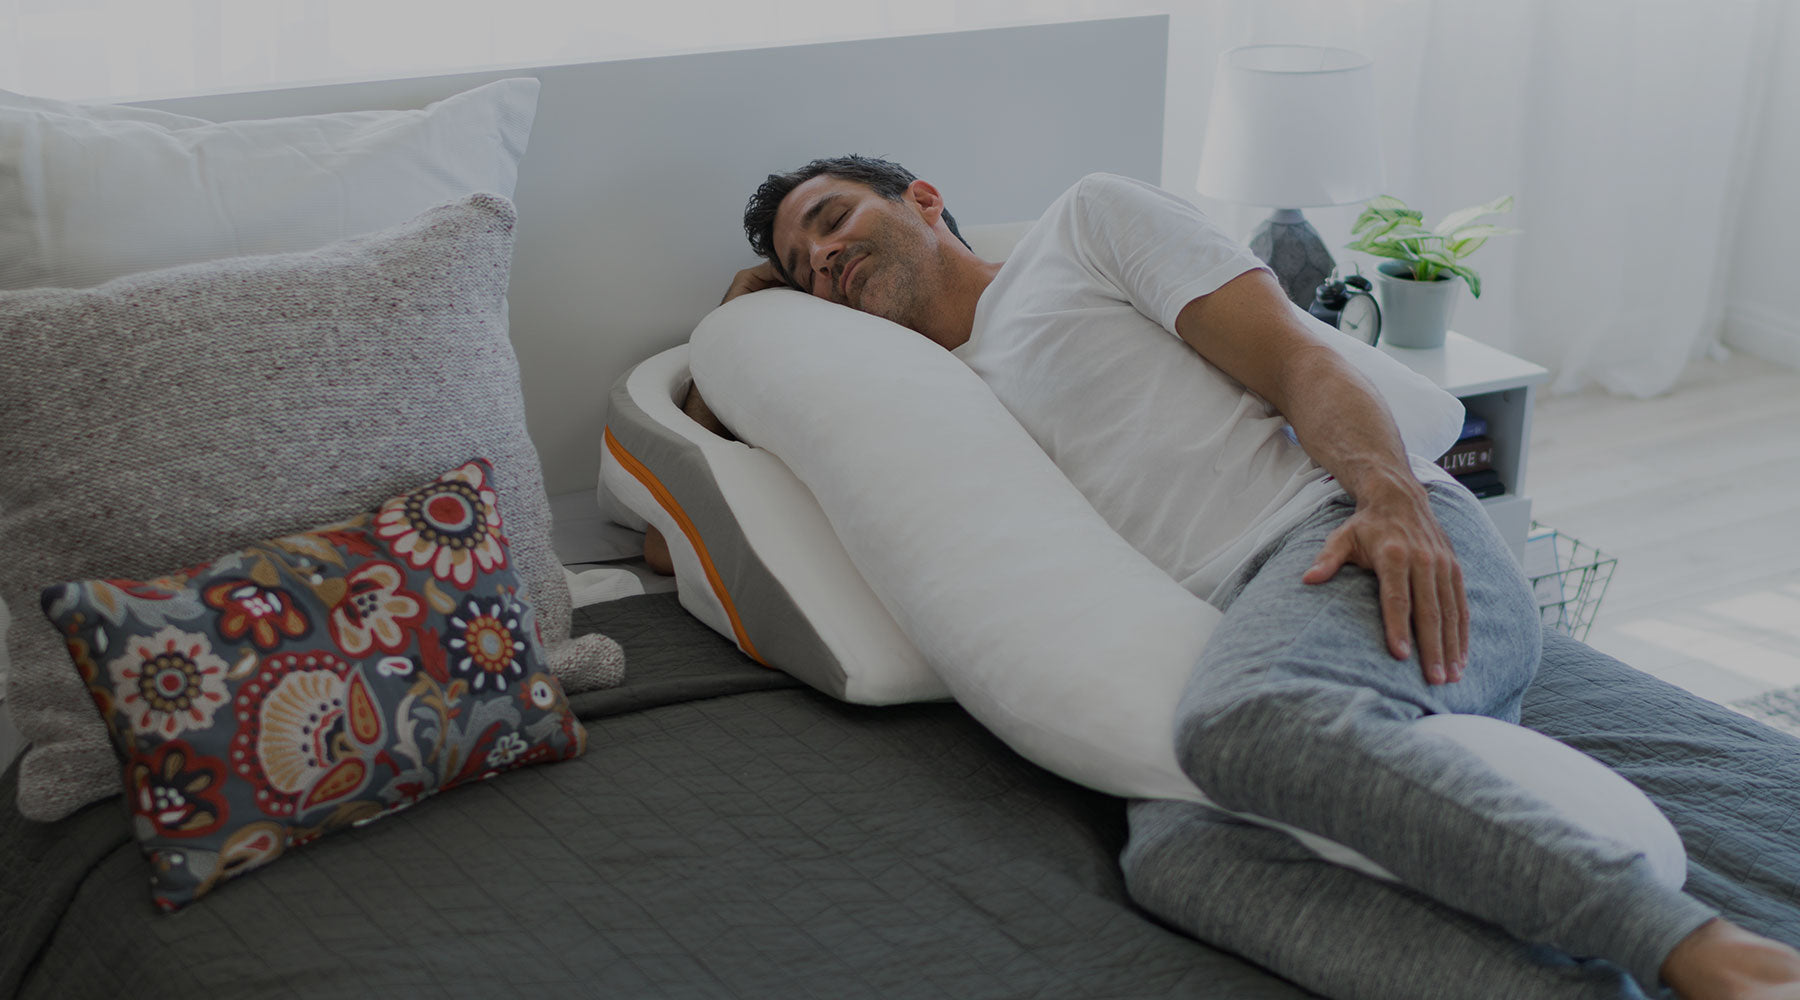 man sleeping on bed with medcline system